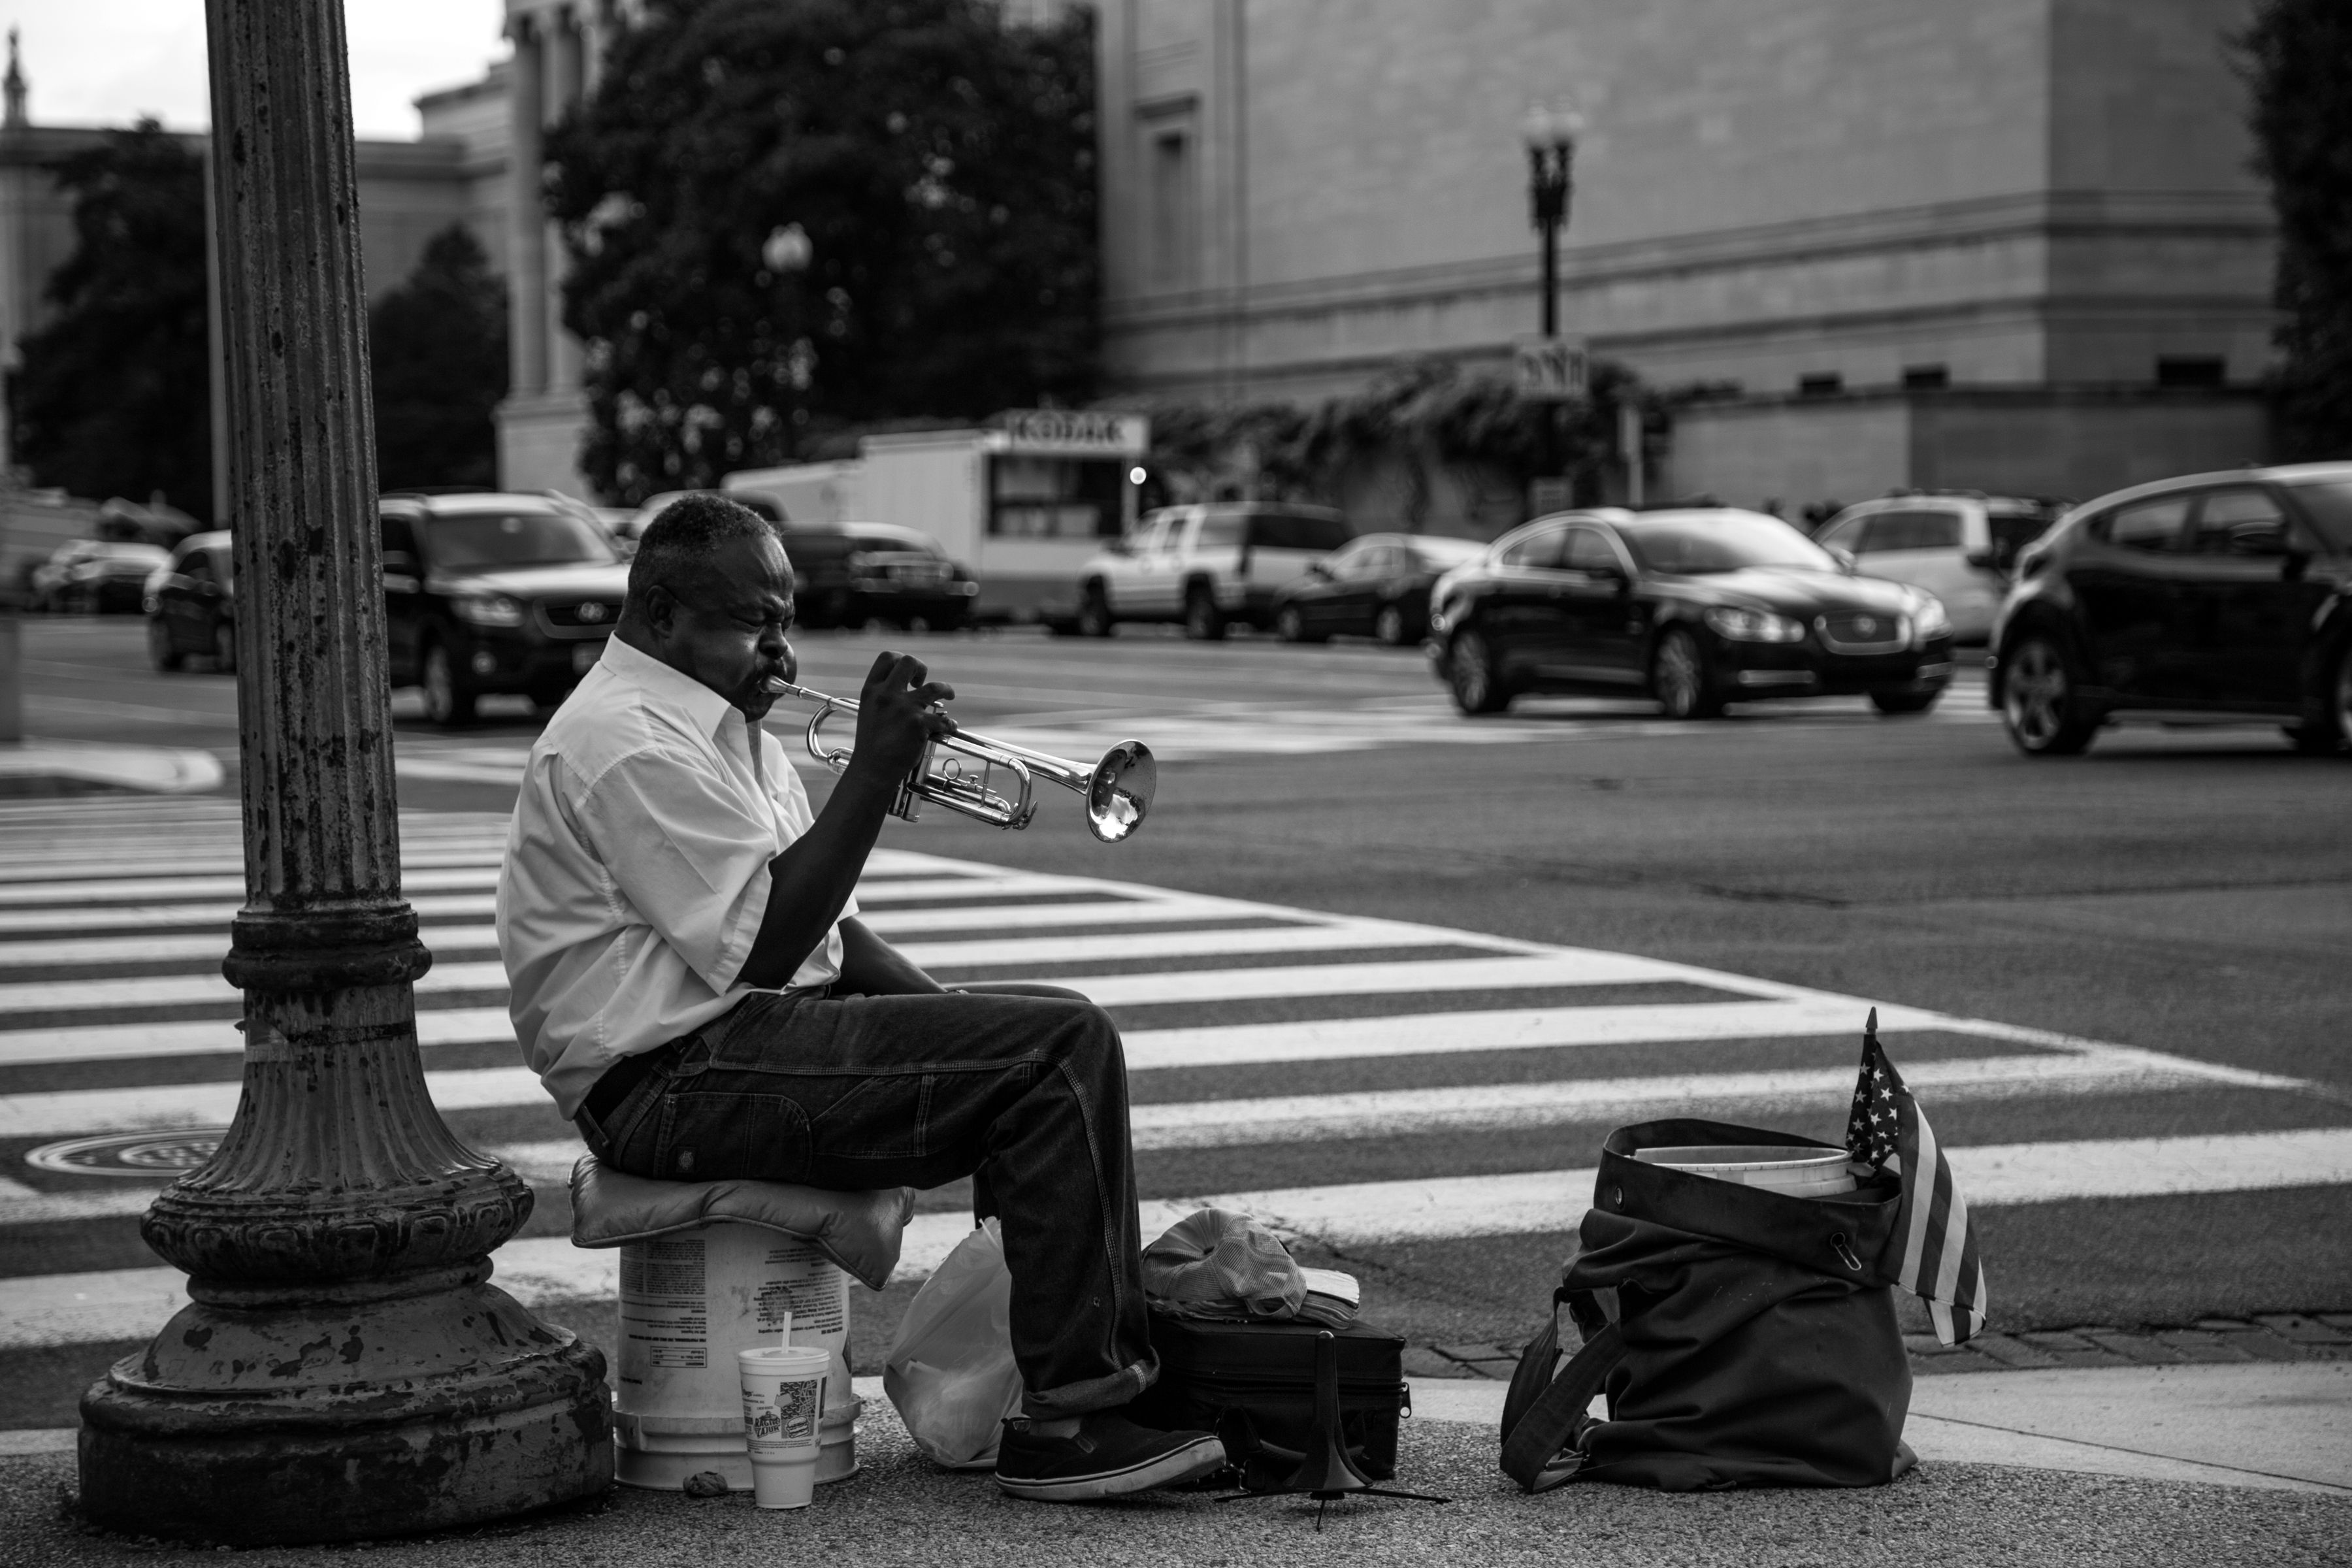 Trumpet, Street photography, Performer, Black and White, The District, Washington DC